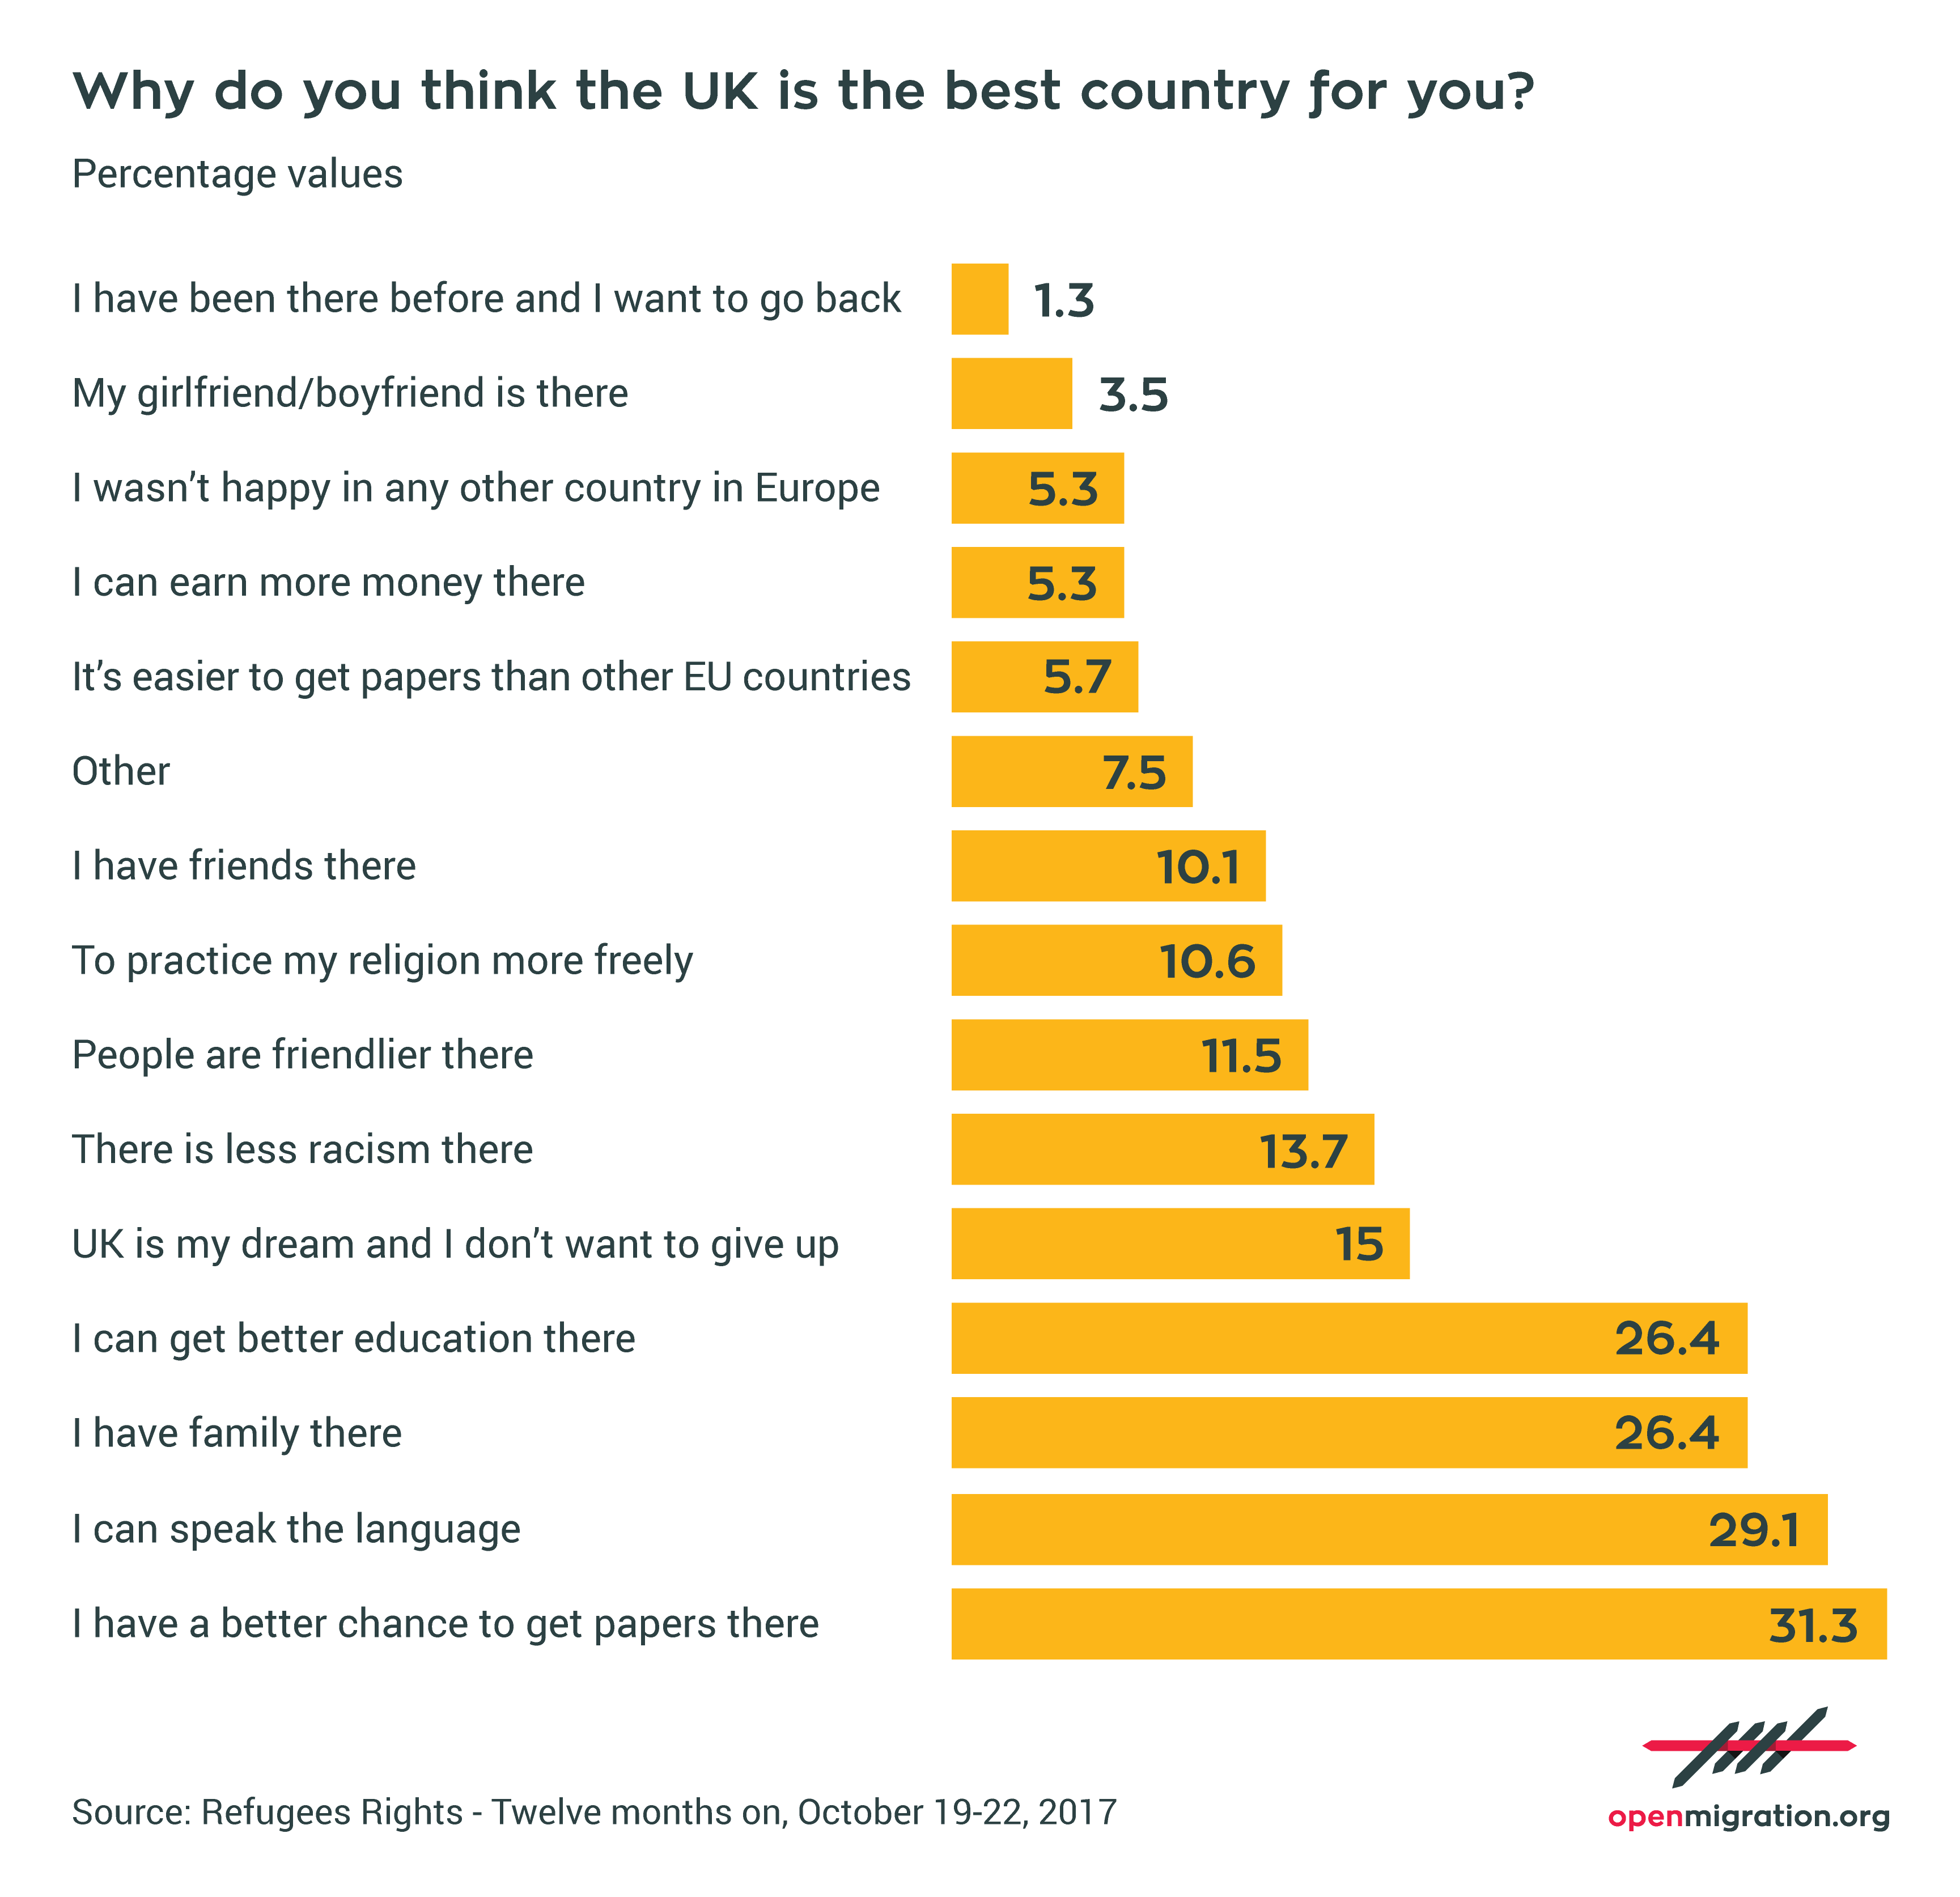 Why do you think the UK is the best country for you?